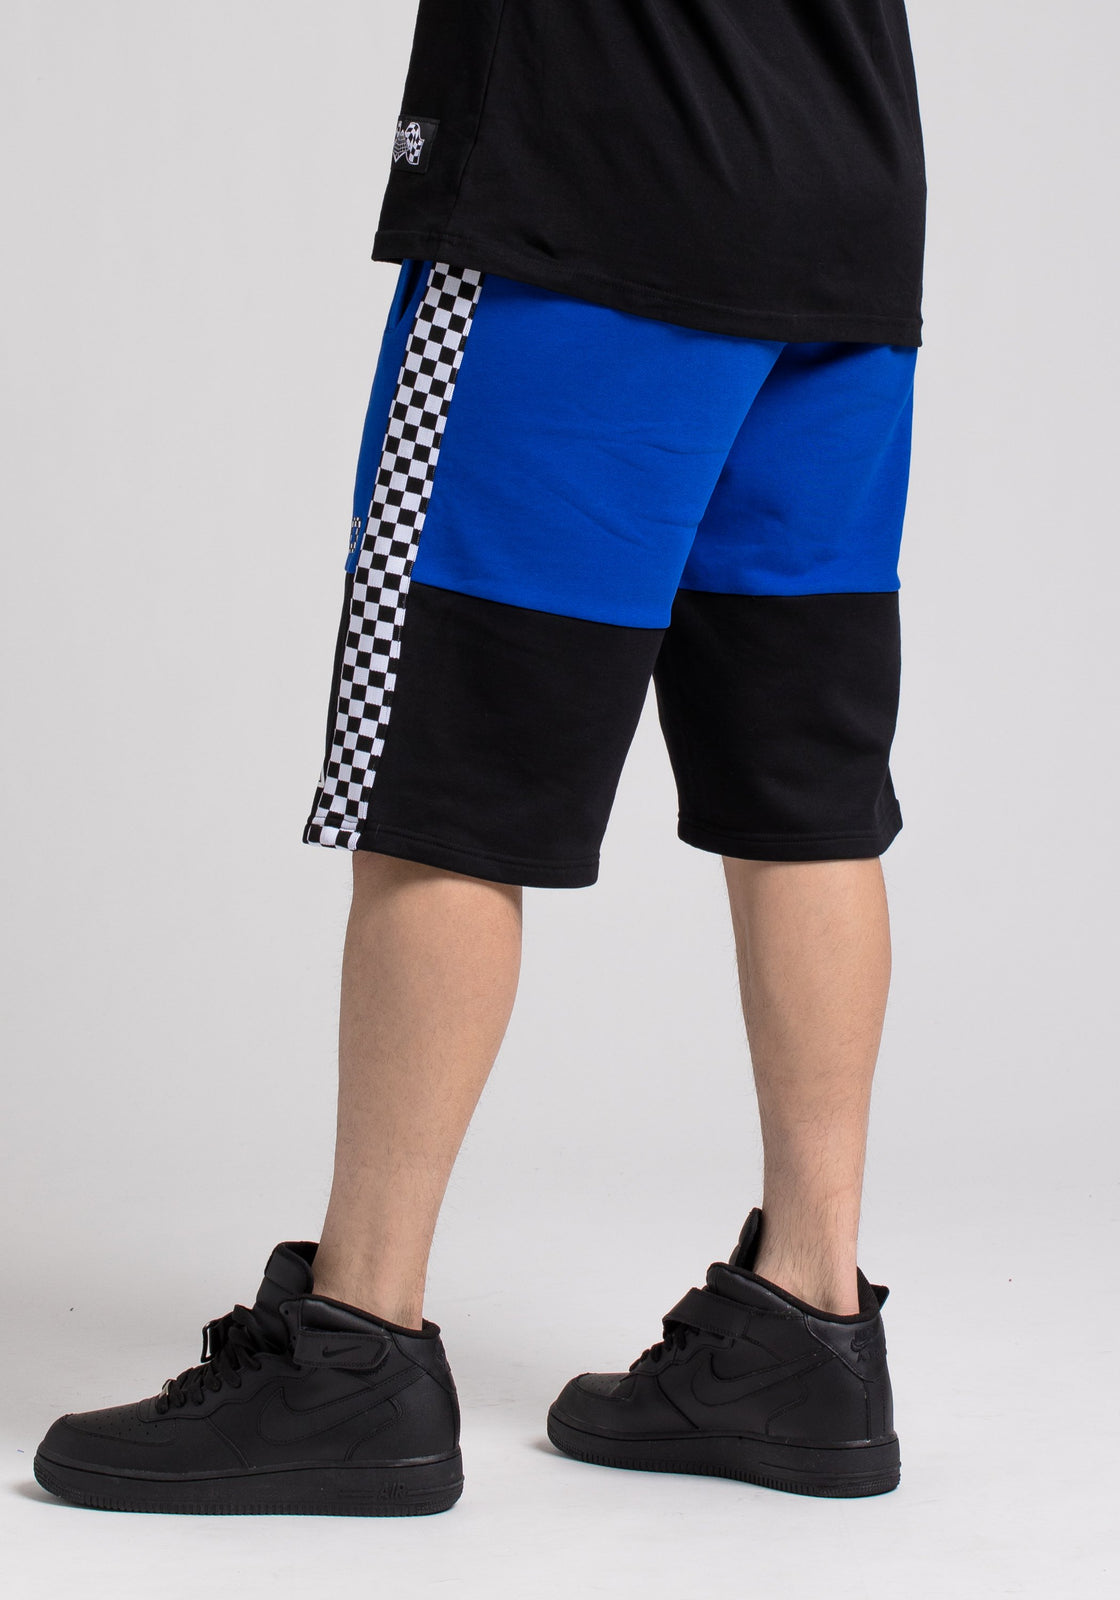 BP MICRO CHECKER BLOCK SHORT - Color: Blue